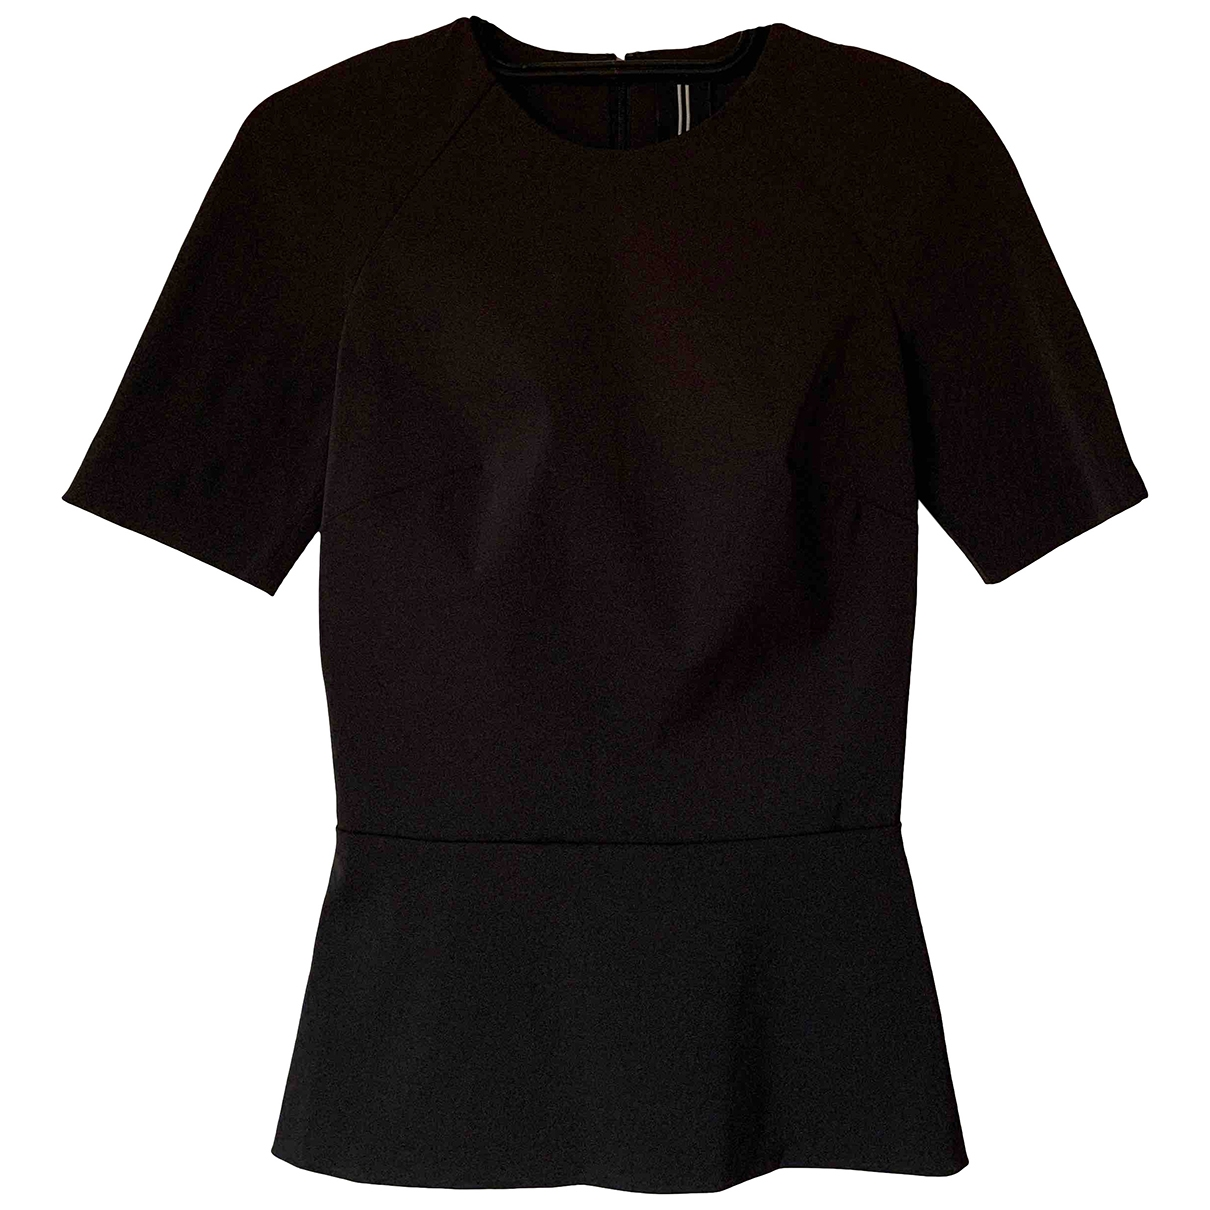 Dion Lee Line \N Black  top for Women 4 UK